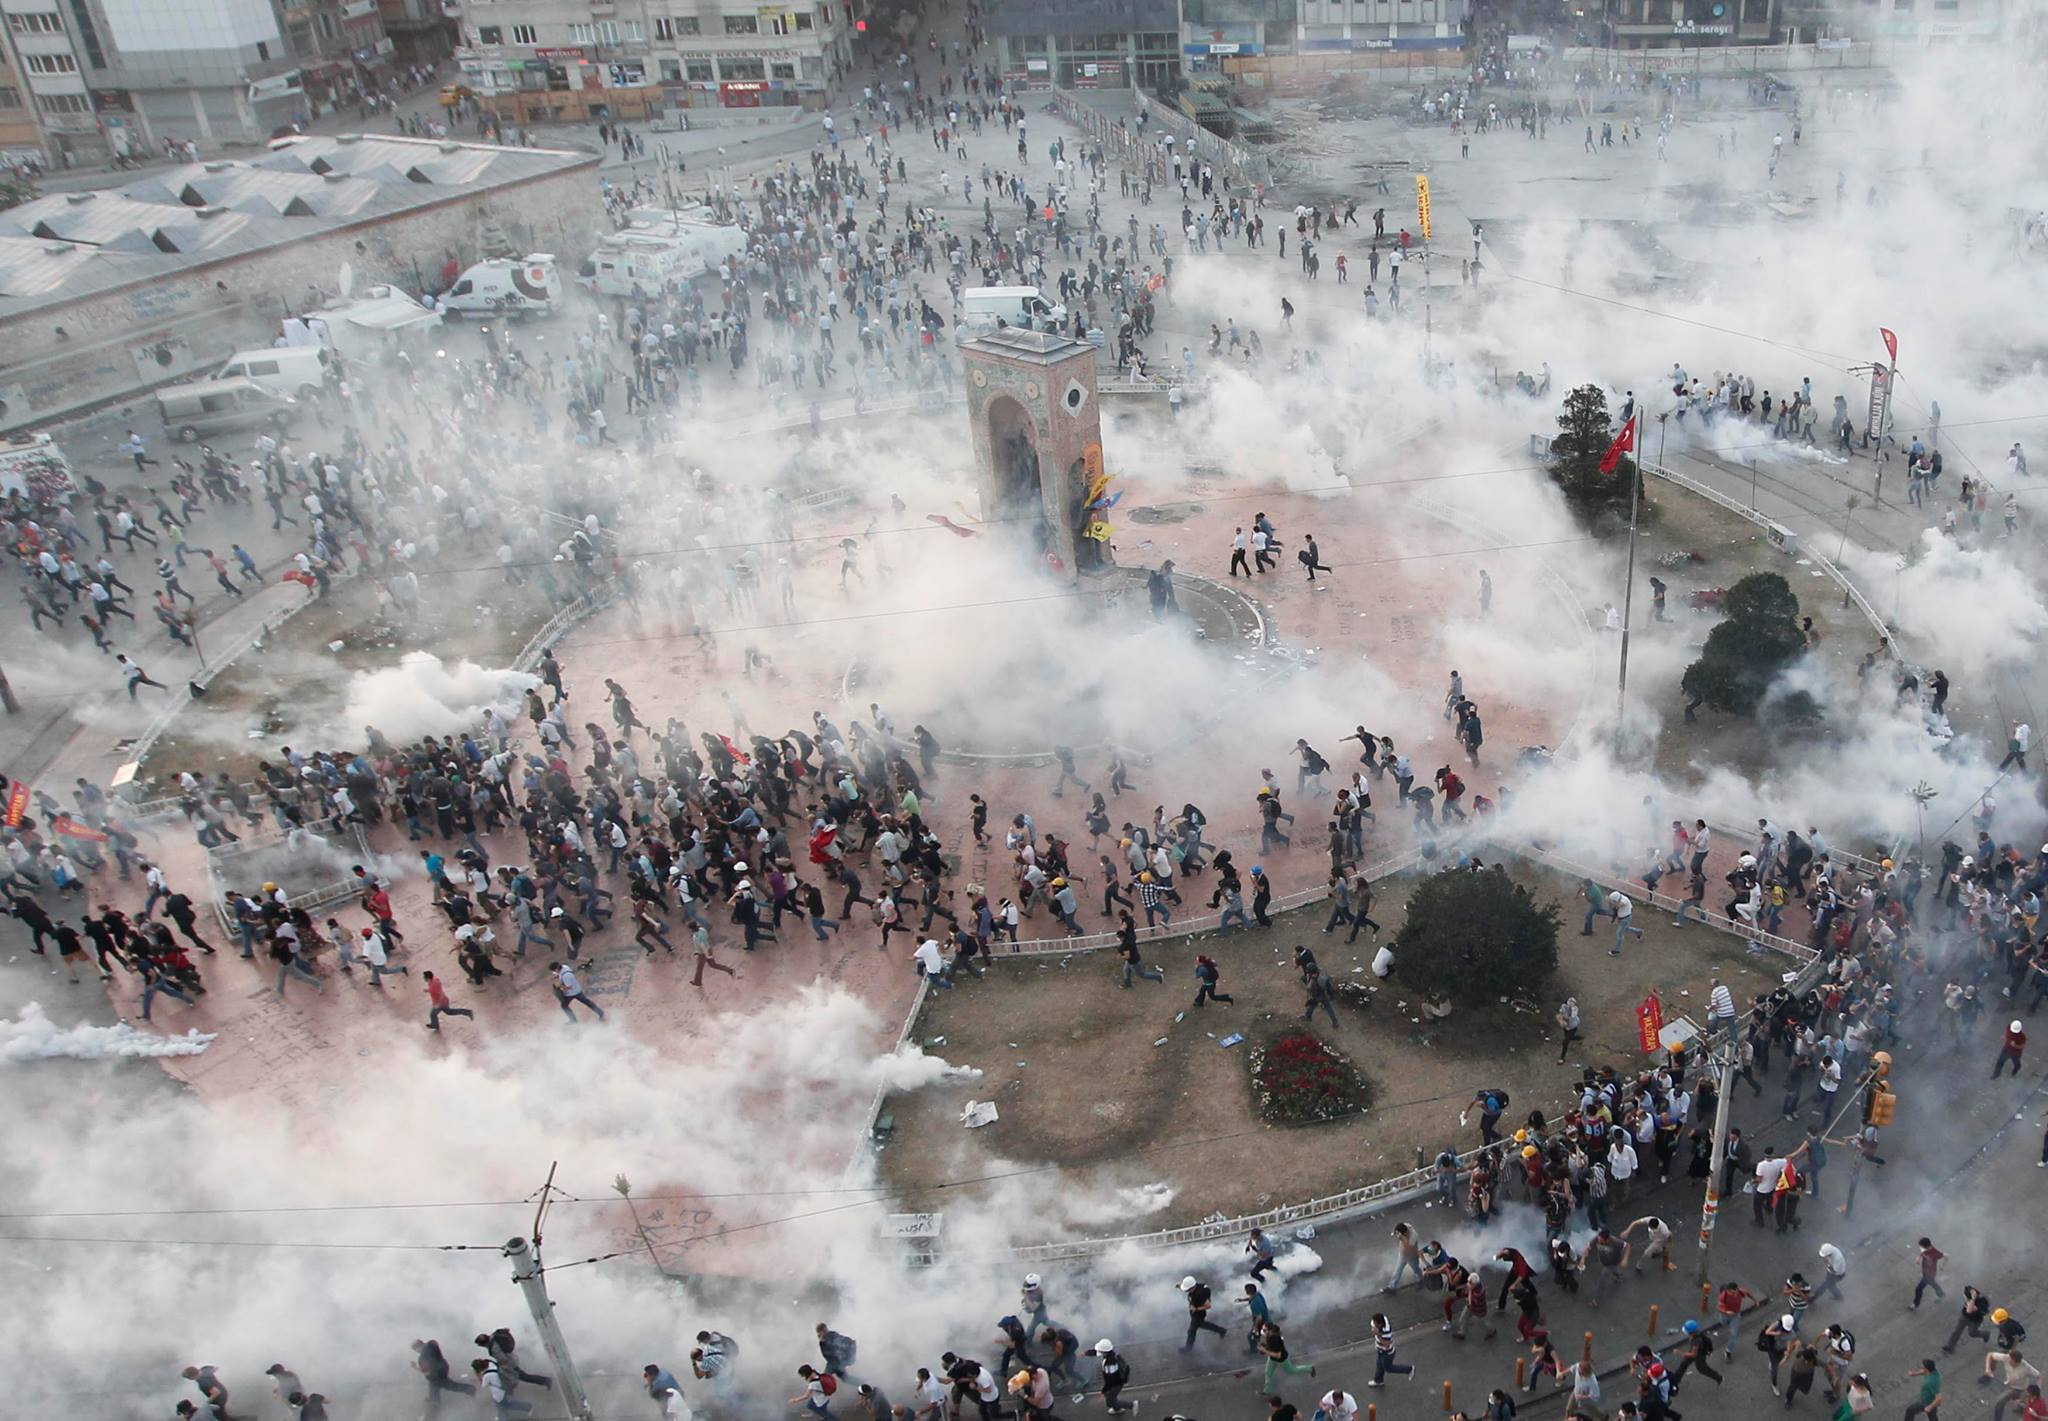 Tear Gas and Water Cannon in Taksim Square - June 11, 2013